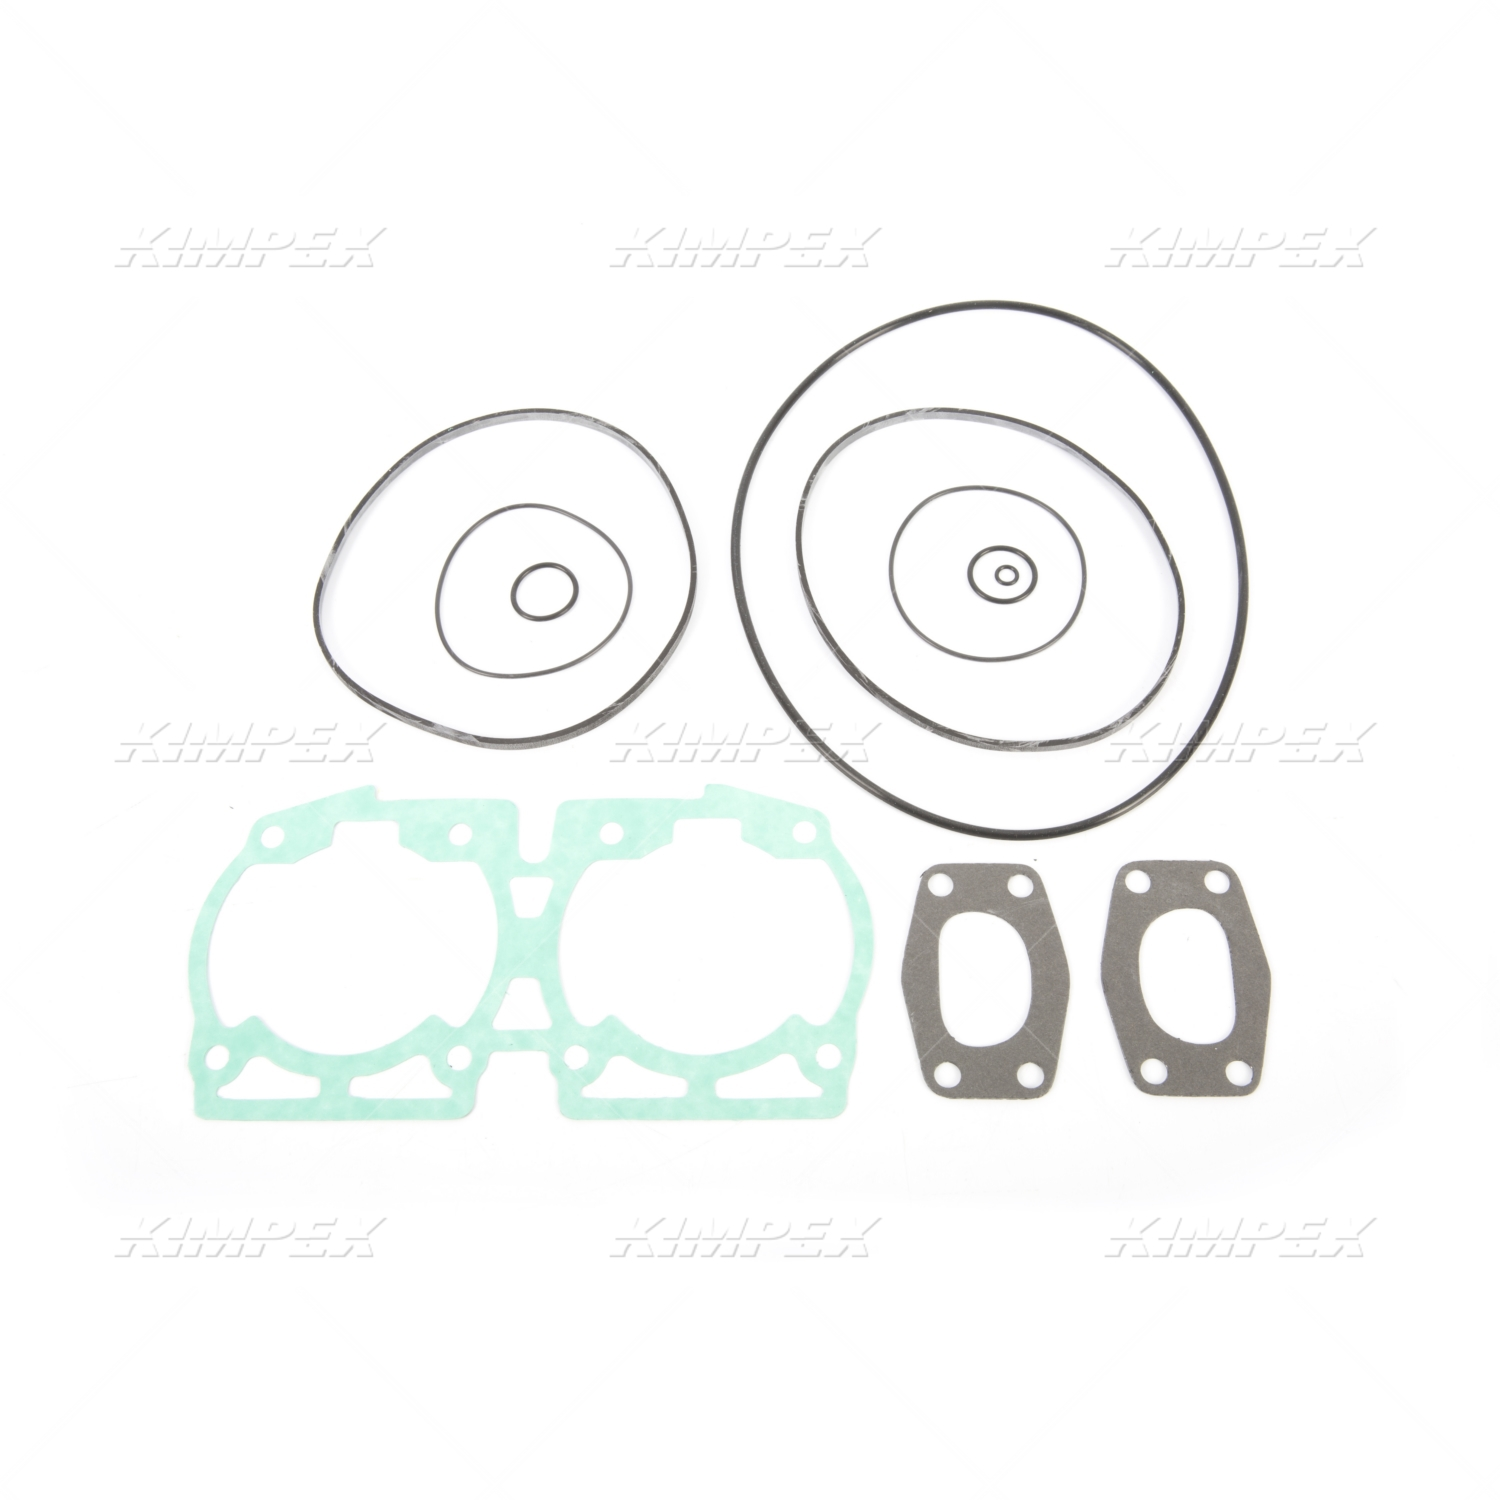 Ski-doo WINDEROSA Top Gasket Set, Pro-Formance #304105 by Winderosa